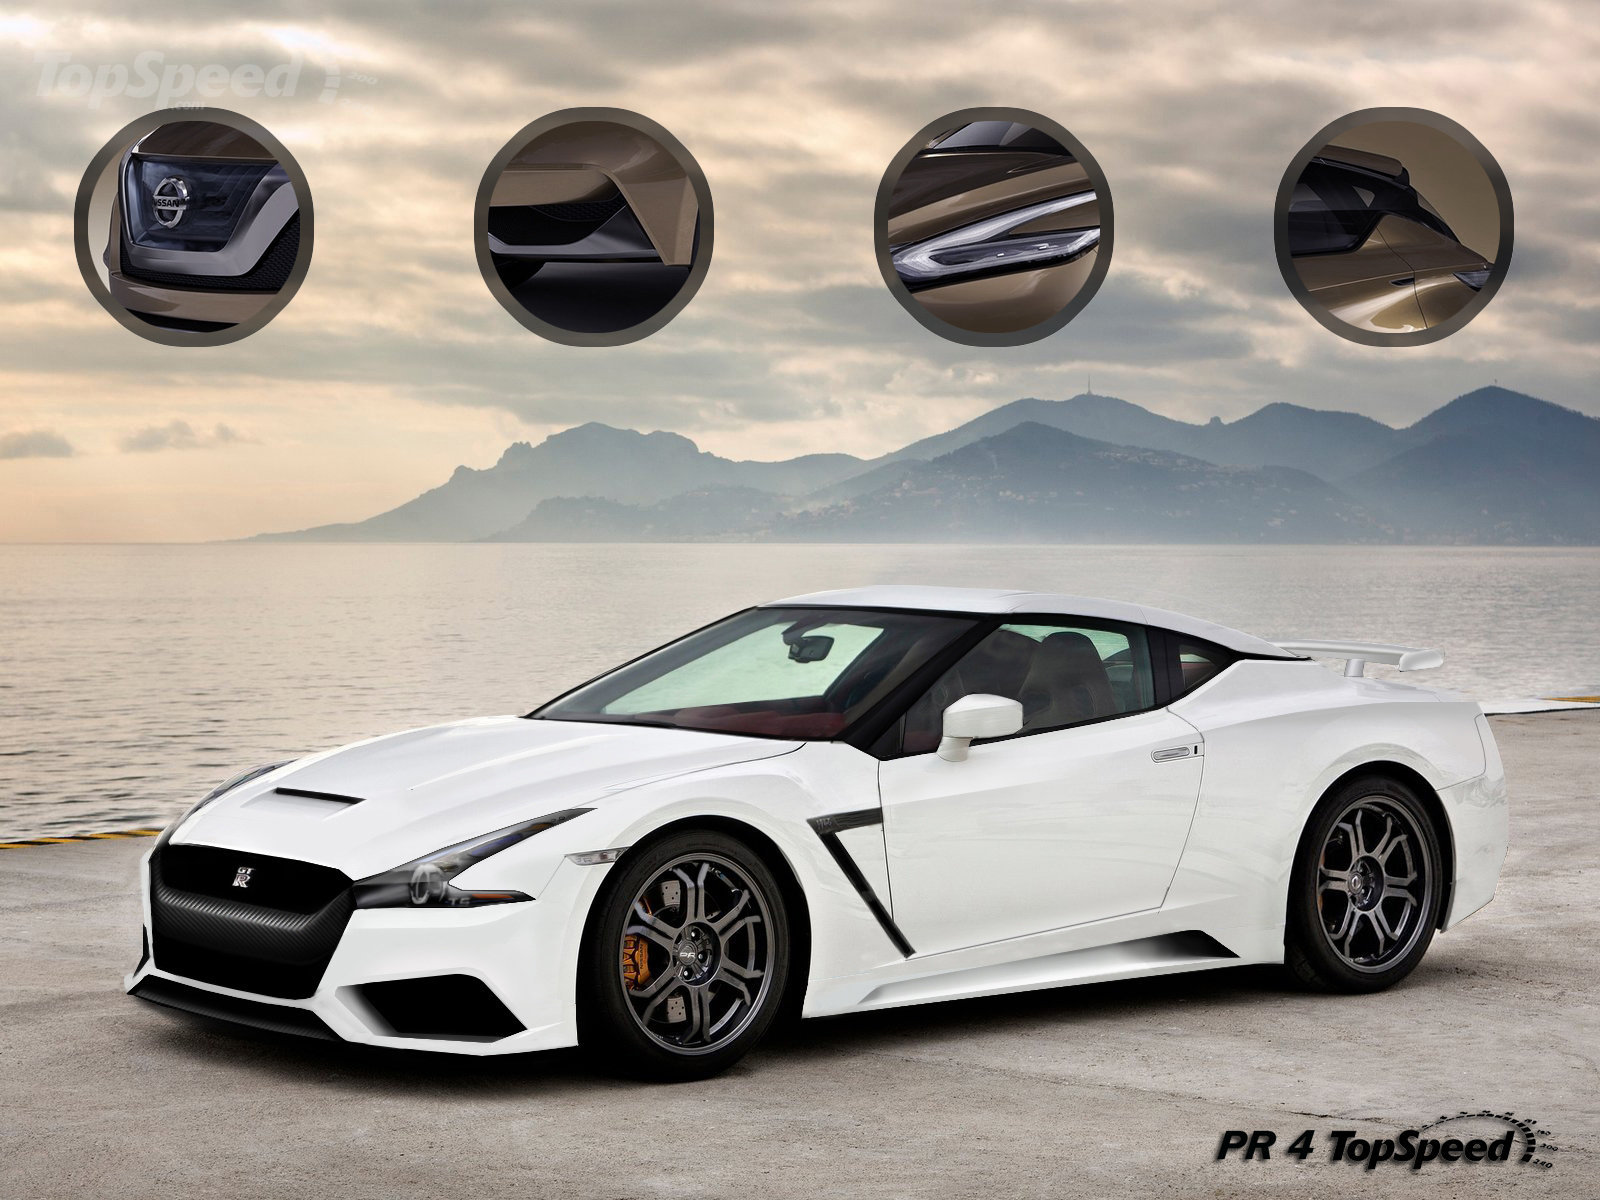 Rendered: Could the 2016 Nissan GT-R Look Like This? - Motor Trend